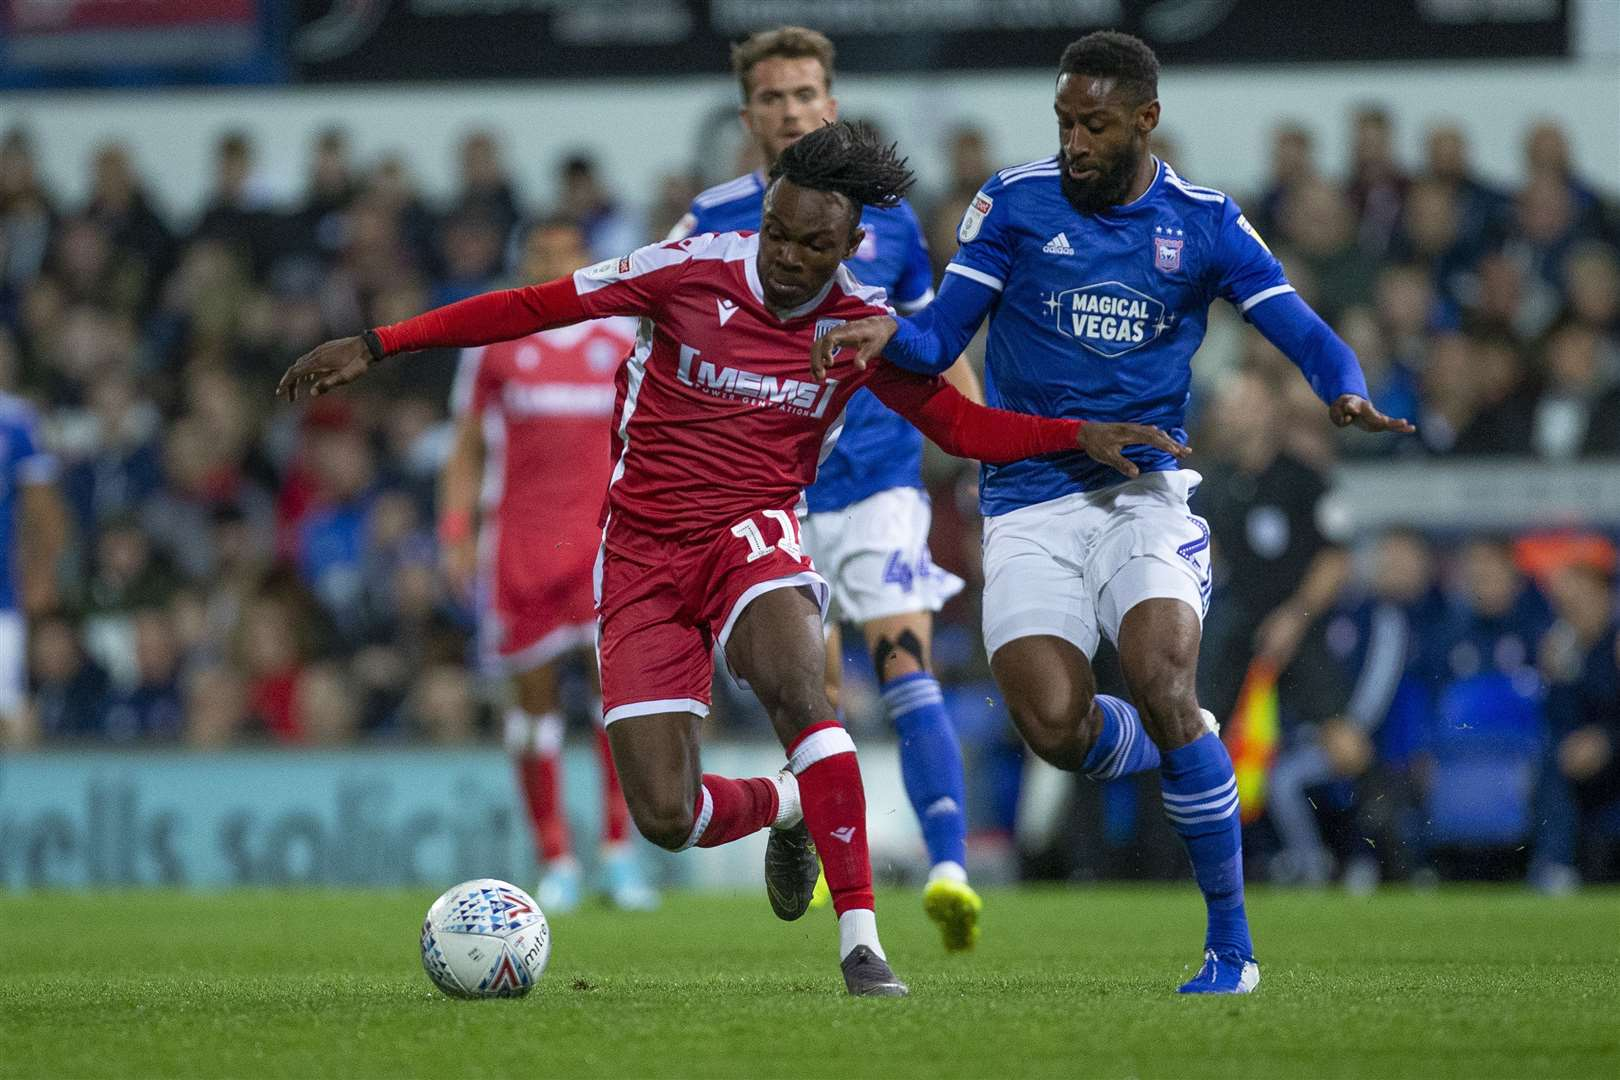 Gillingham were in action at Ipswich in the EFL Trophy on Tuesday but a weakened side lost heavily Picture: @KentProImages